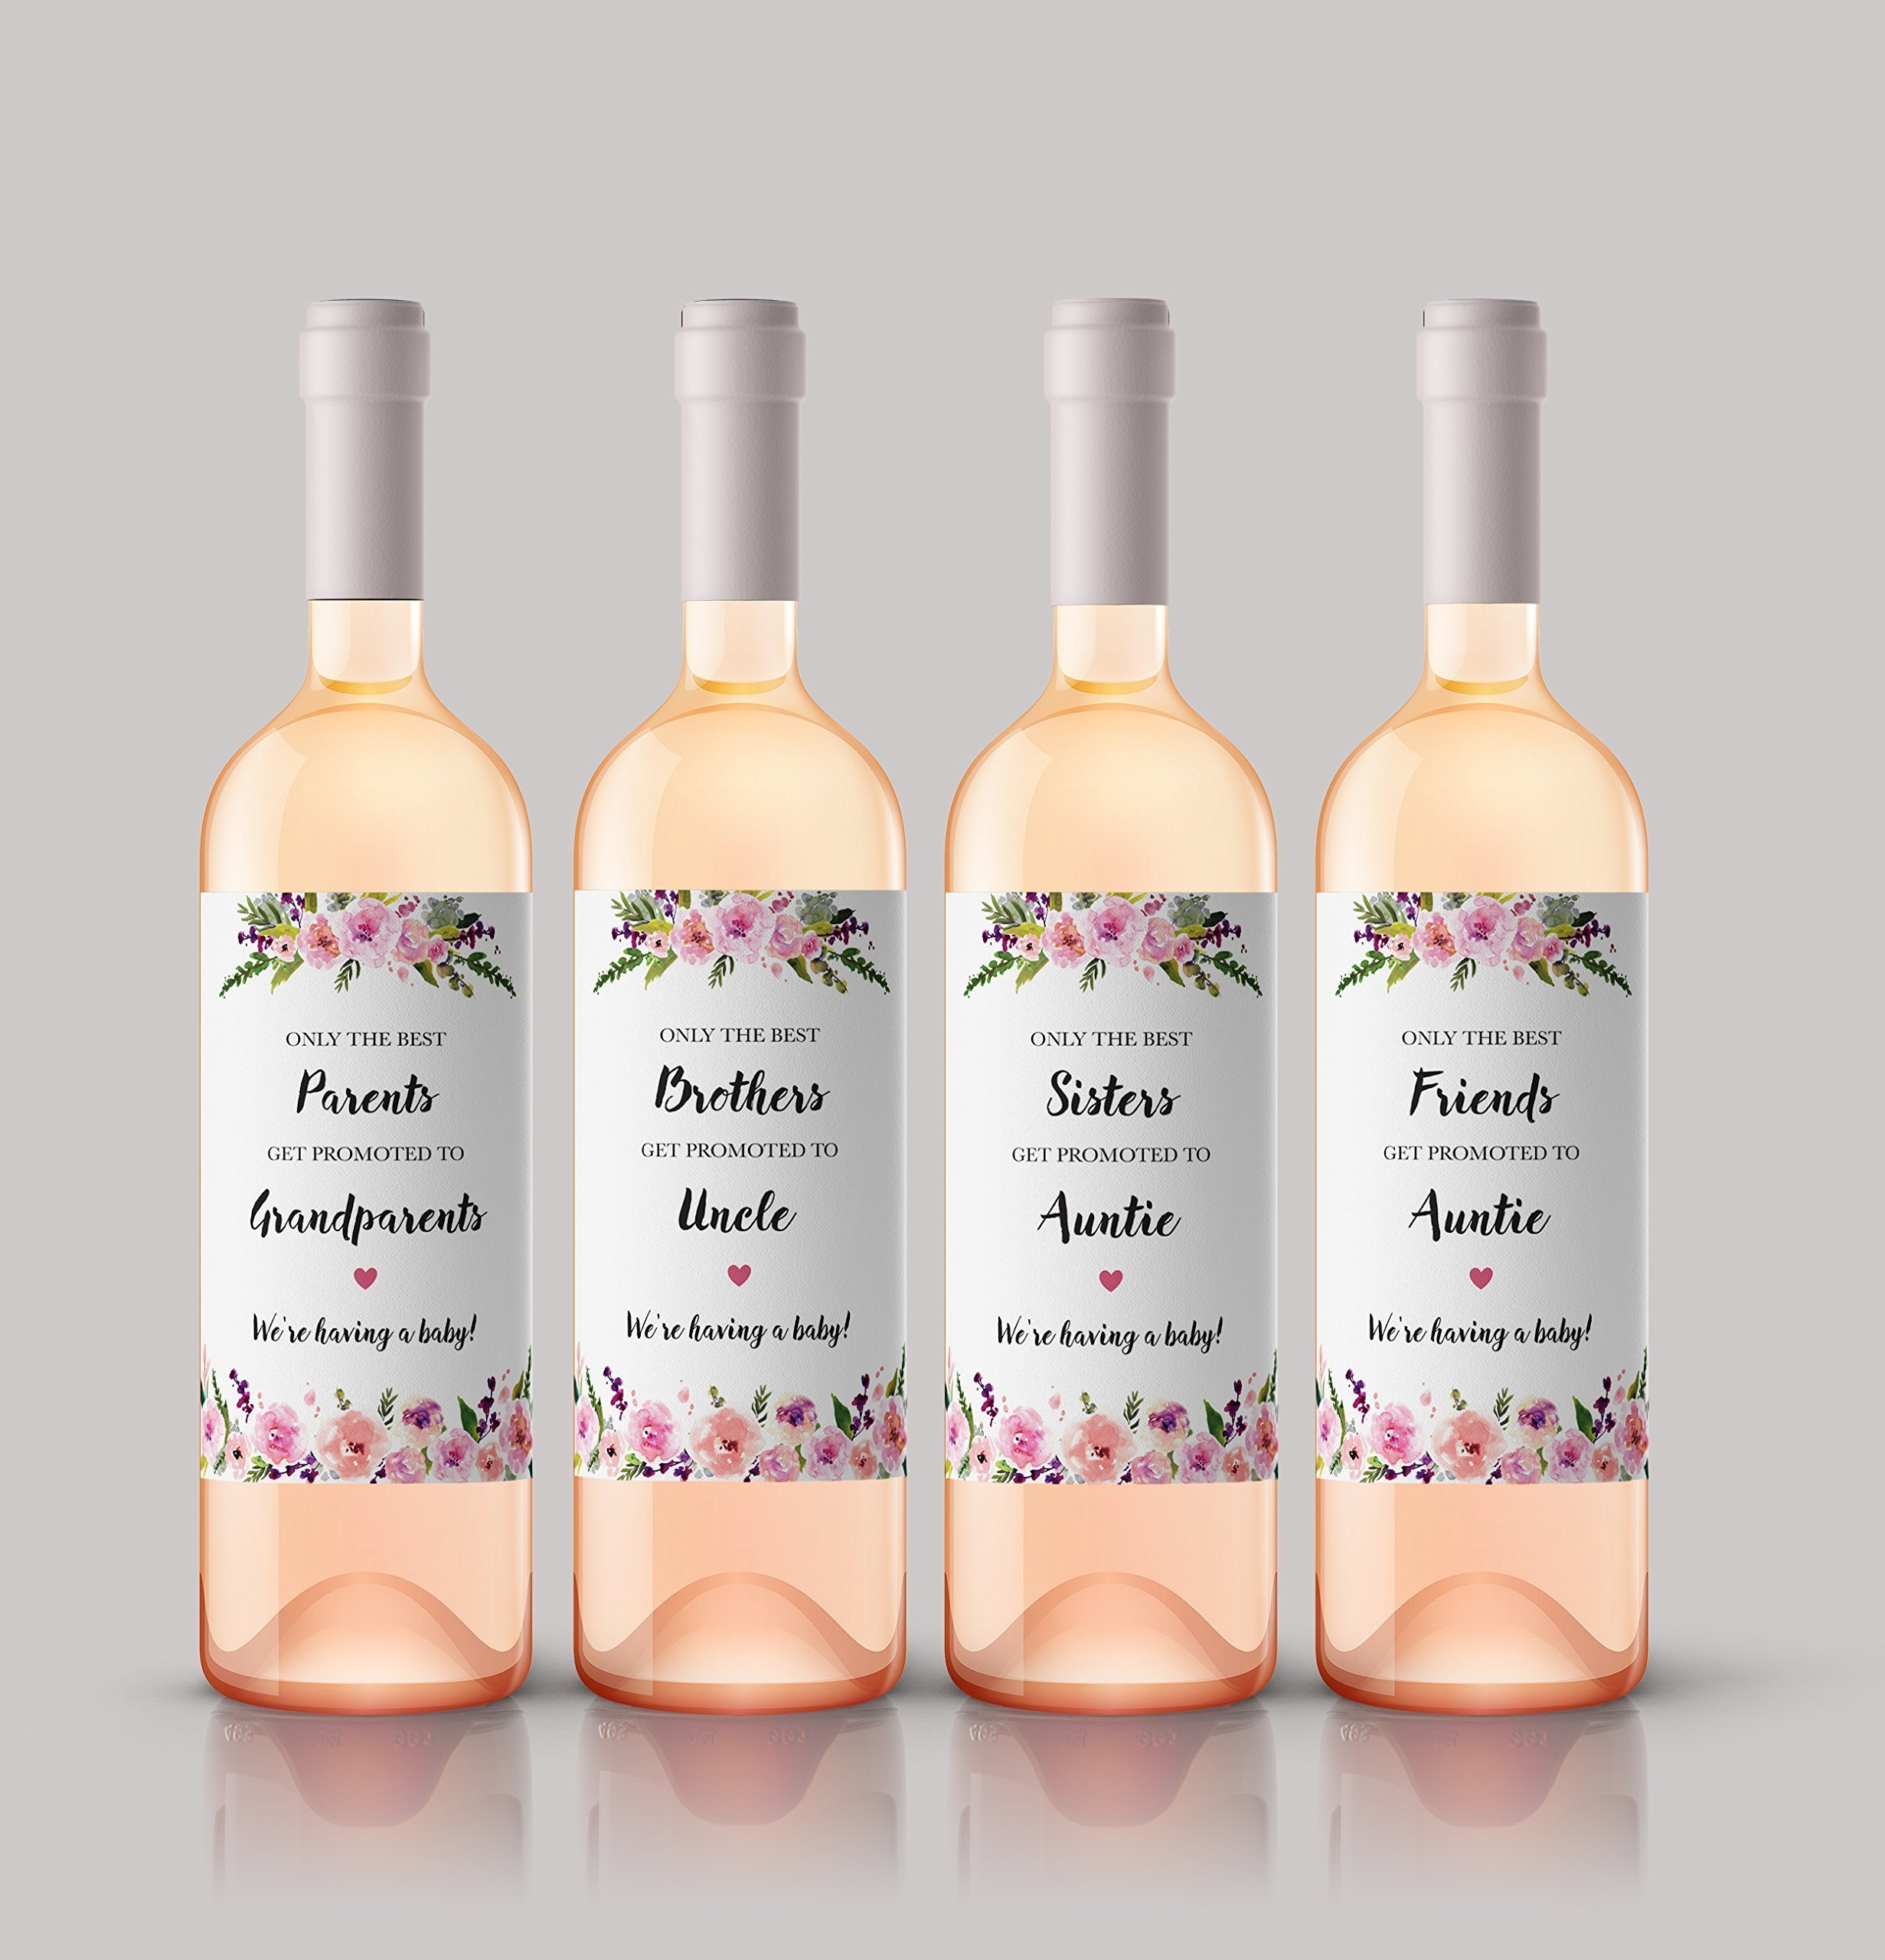 ● SET of 6 ● FAMILY & FRIENDS Pregnancy Announcement Wine Labels: 2 PARENTS Get Promoted to GRANDPARENTS Labels + 1 SISTERS to AUNTIE + 1 BROTHERS to UNCLE + 2 FRIENDS to AUNTIE Labels, A140-2PSBF1-WL